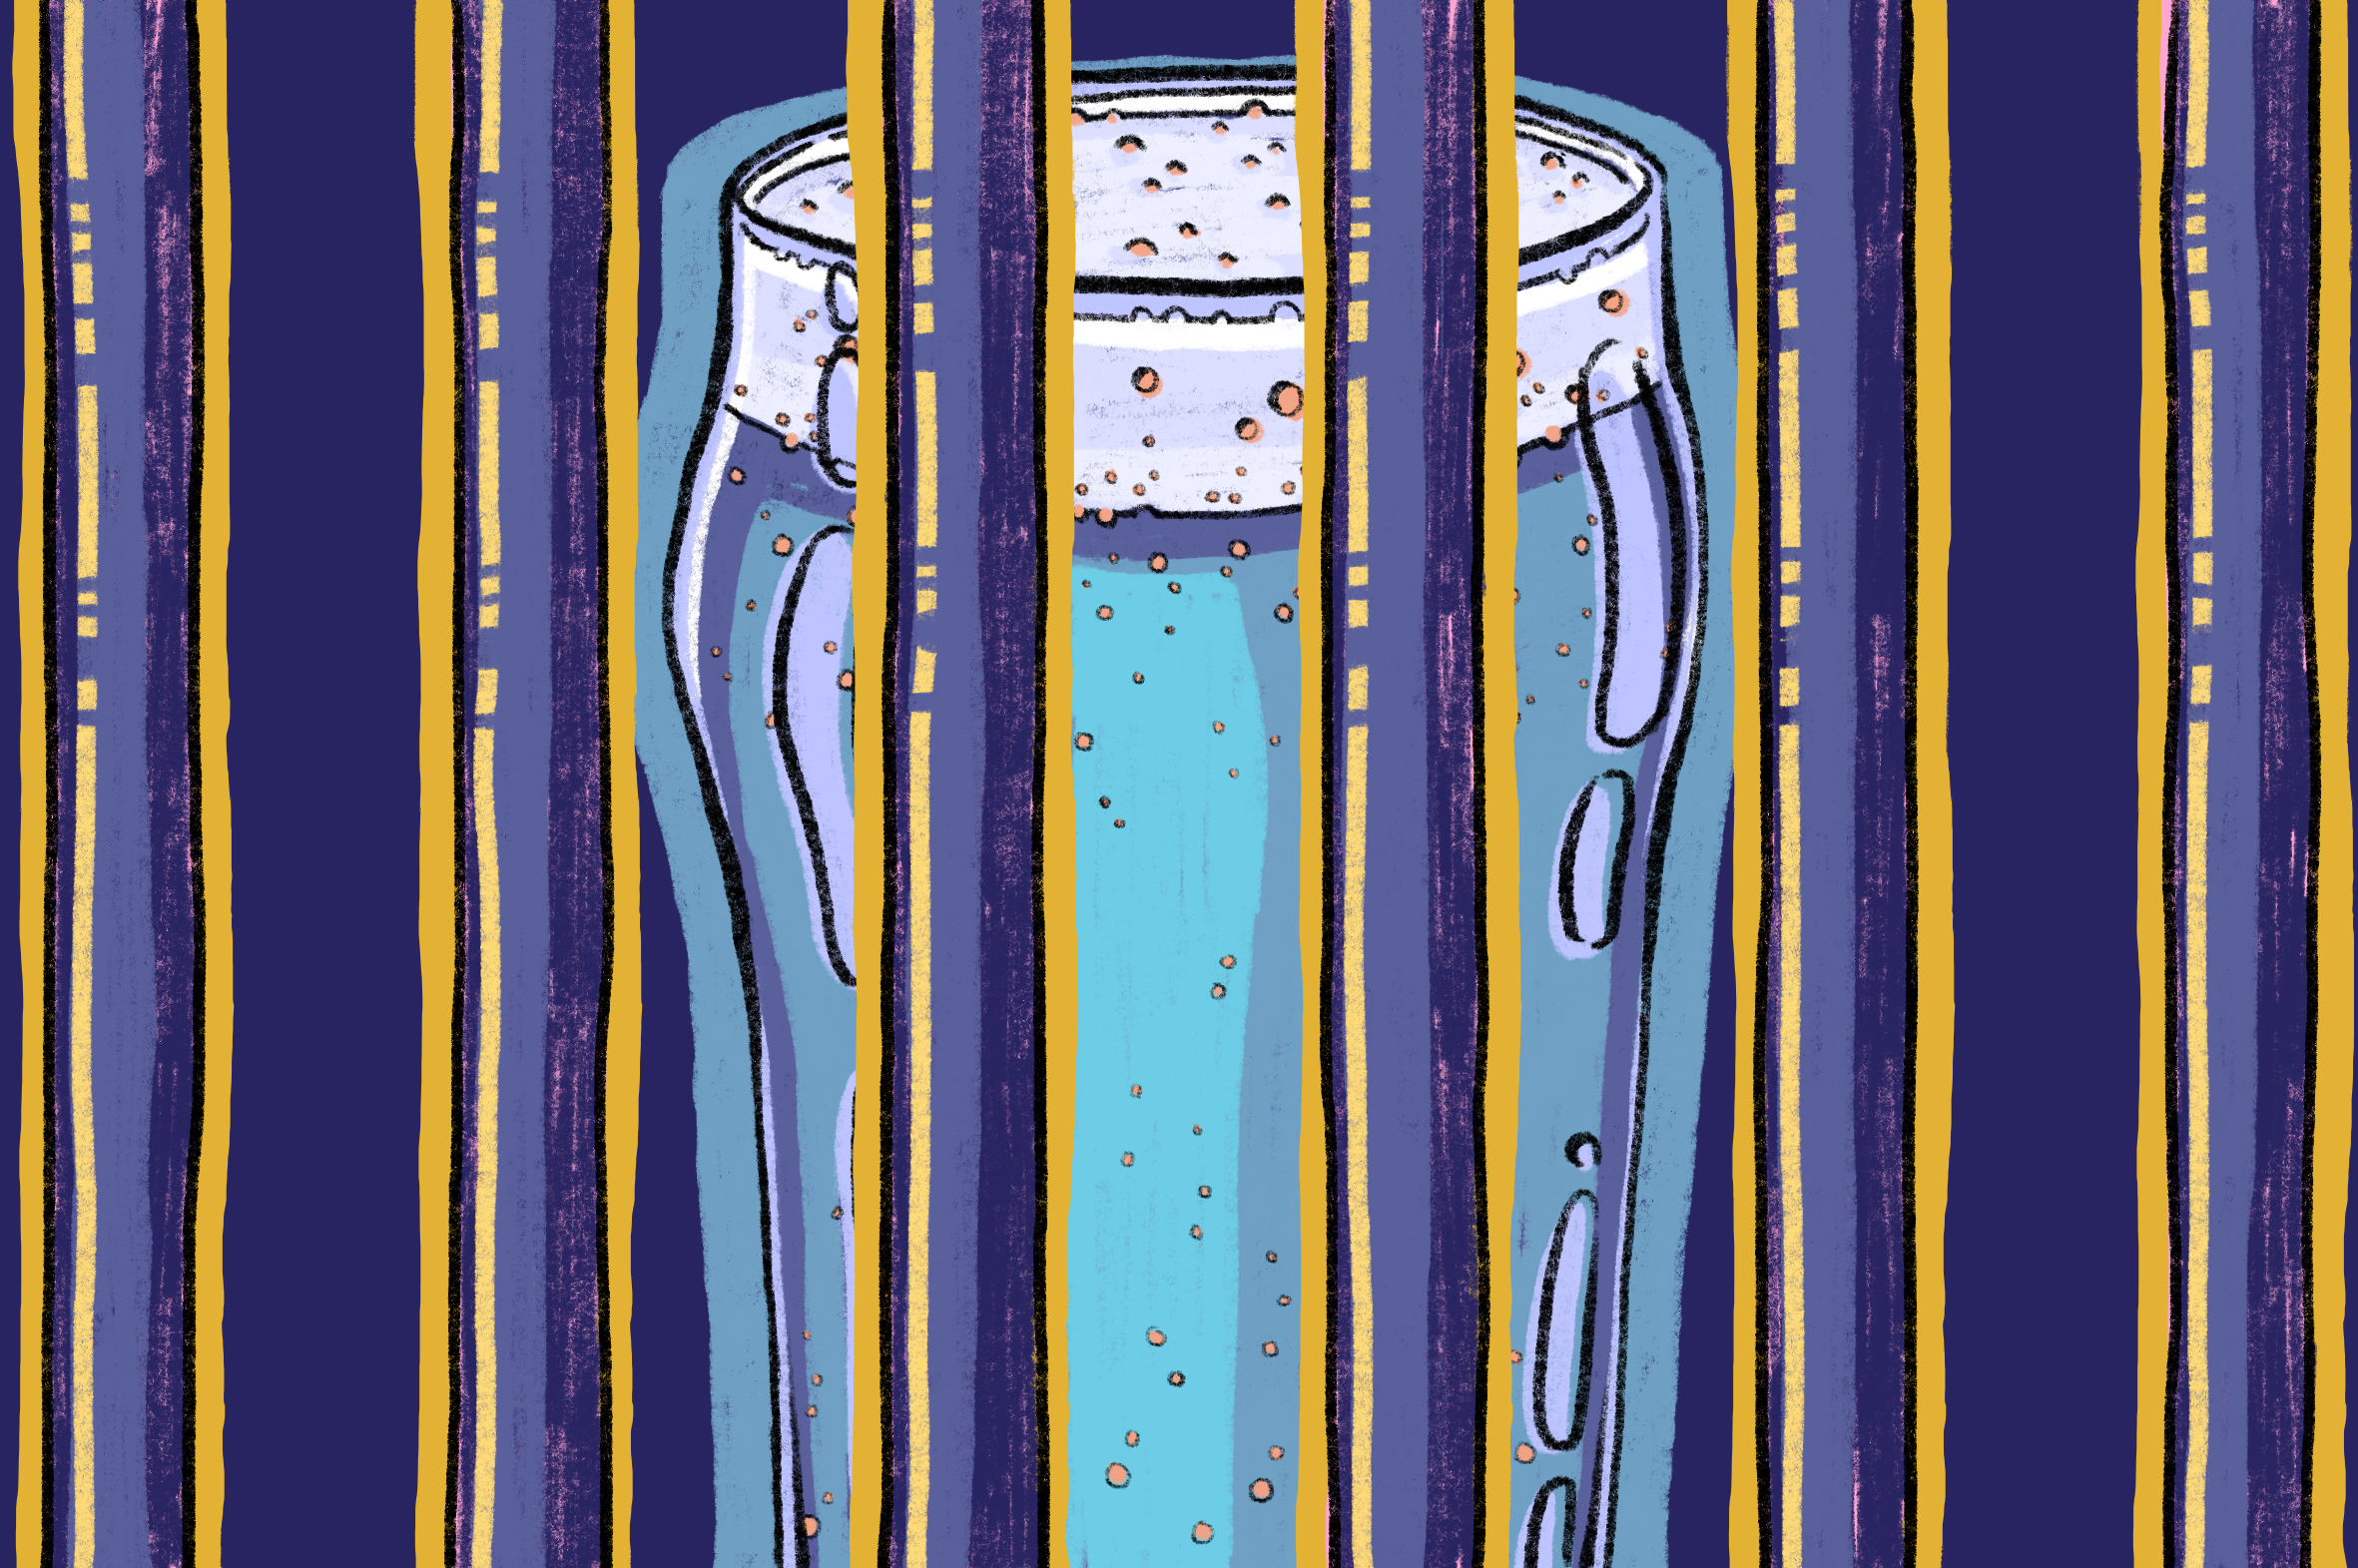 An illustration of a pint of beer locked behind bars.